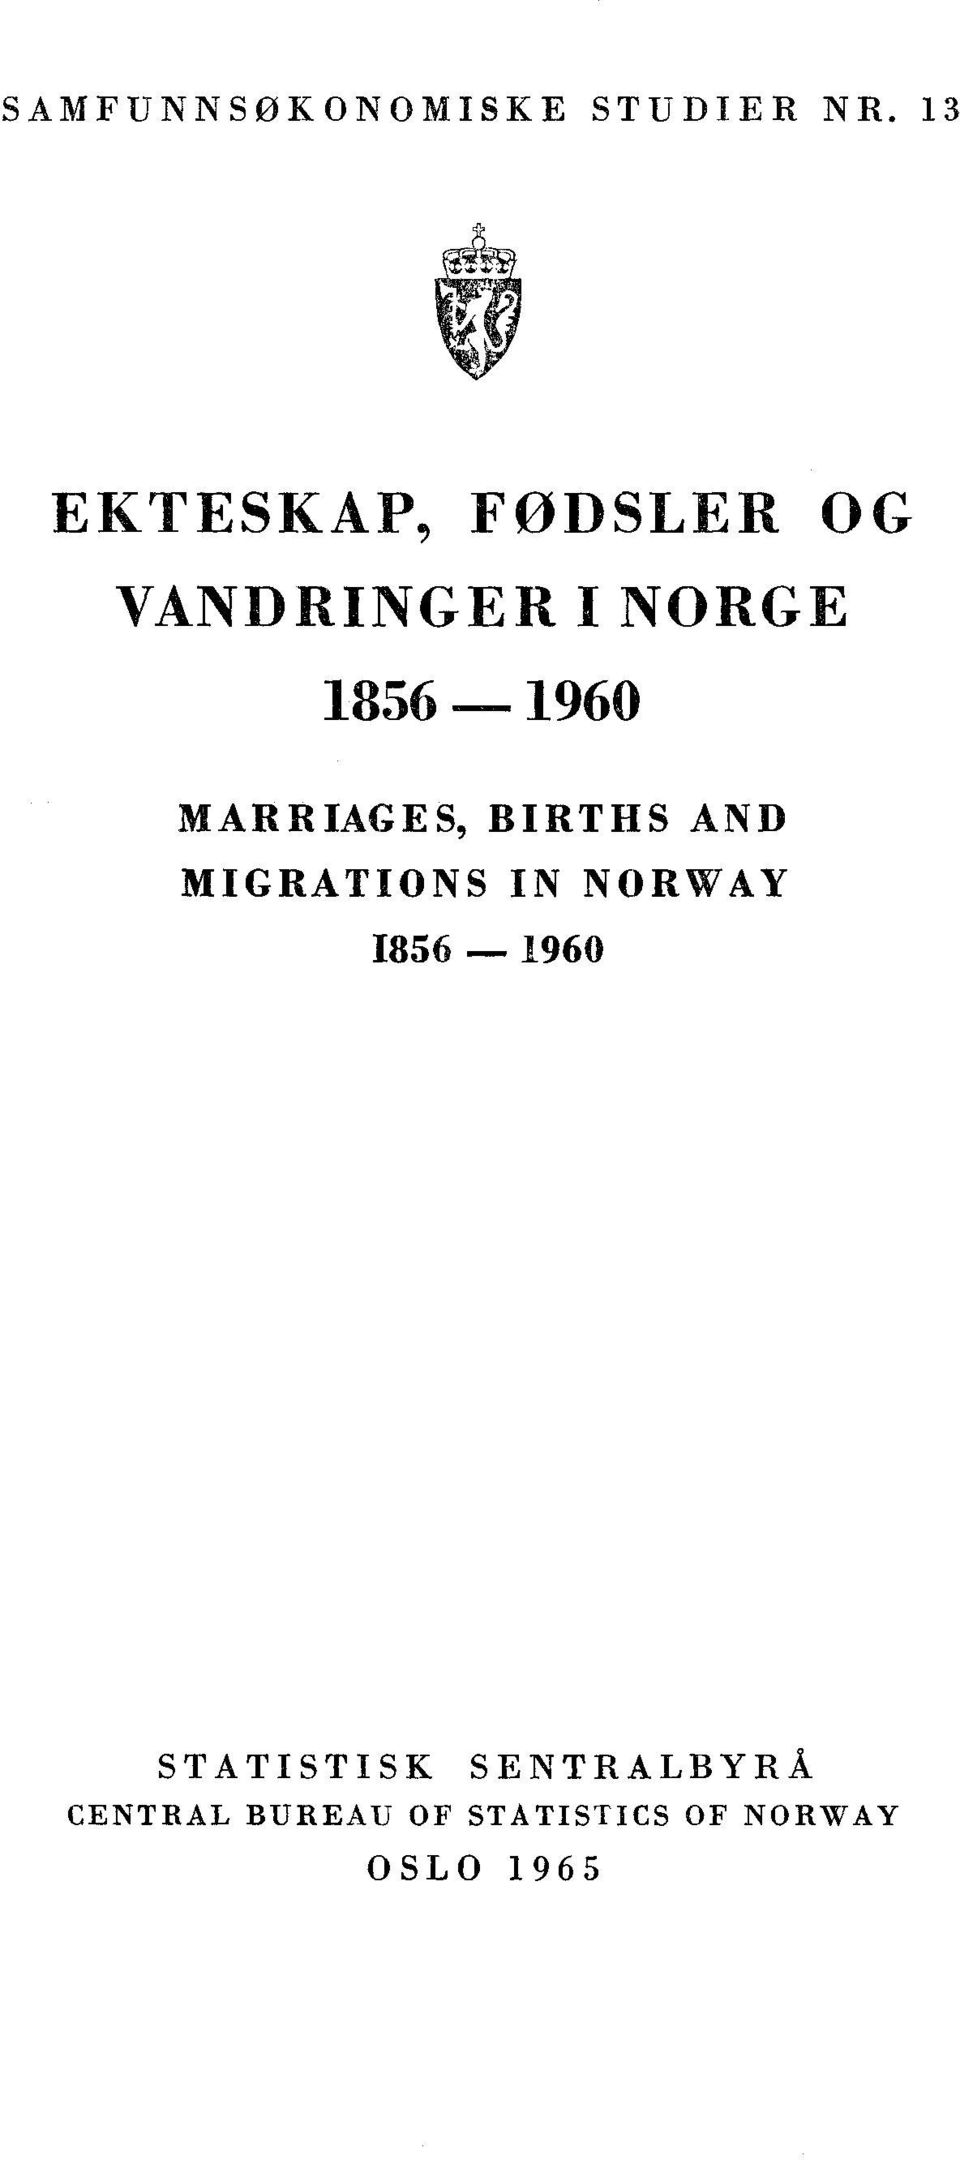 1960 MARRIAGES, BIRTHS AND MIGRATIONS IN NORWAY